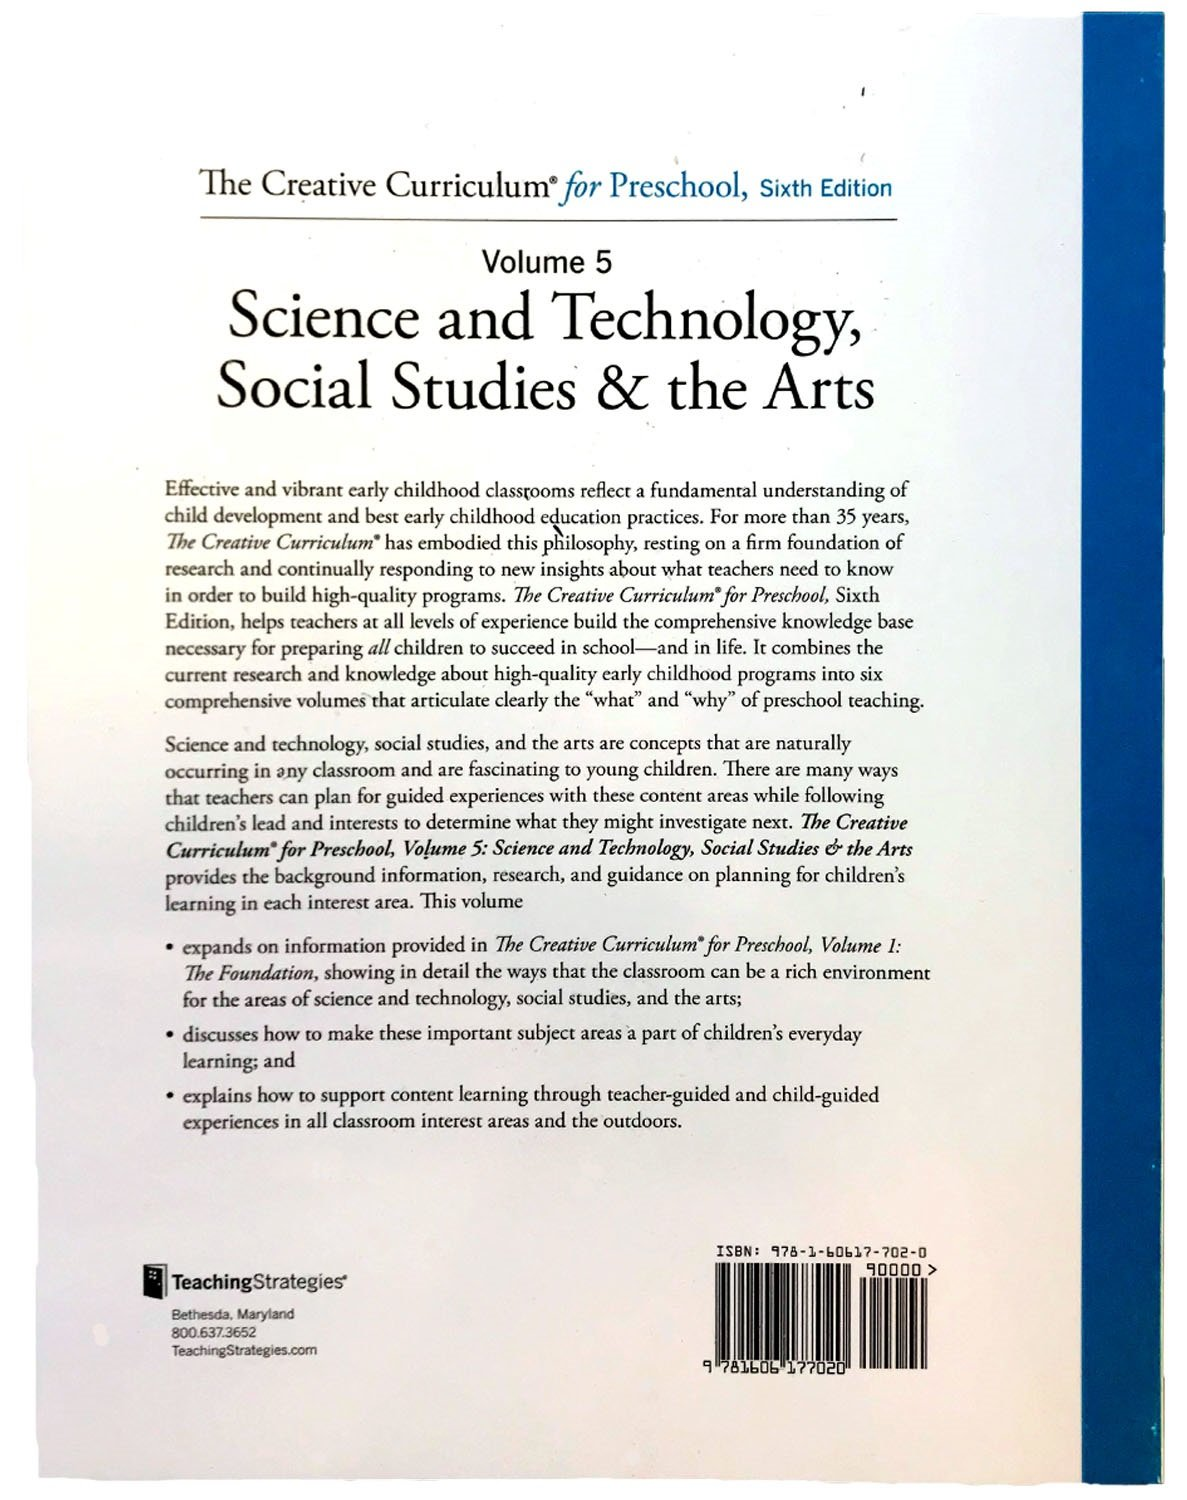 creative curriculum preschool volume 5 science technology social